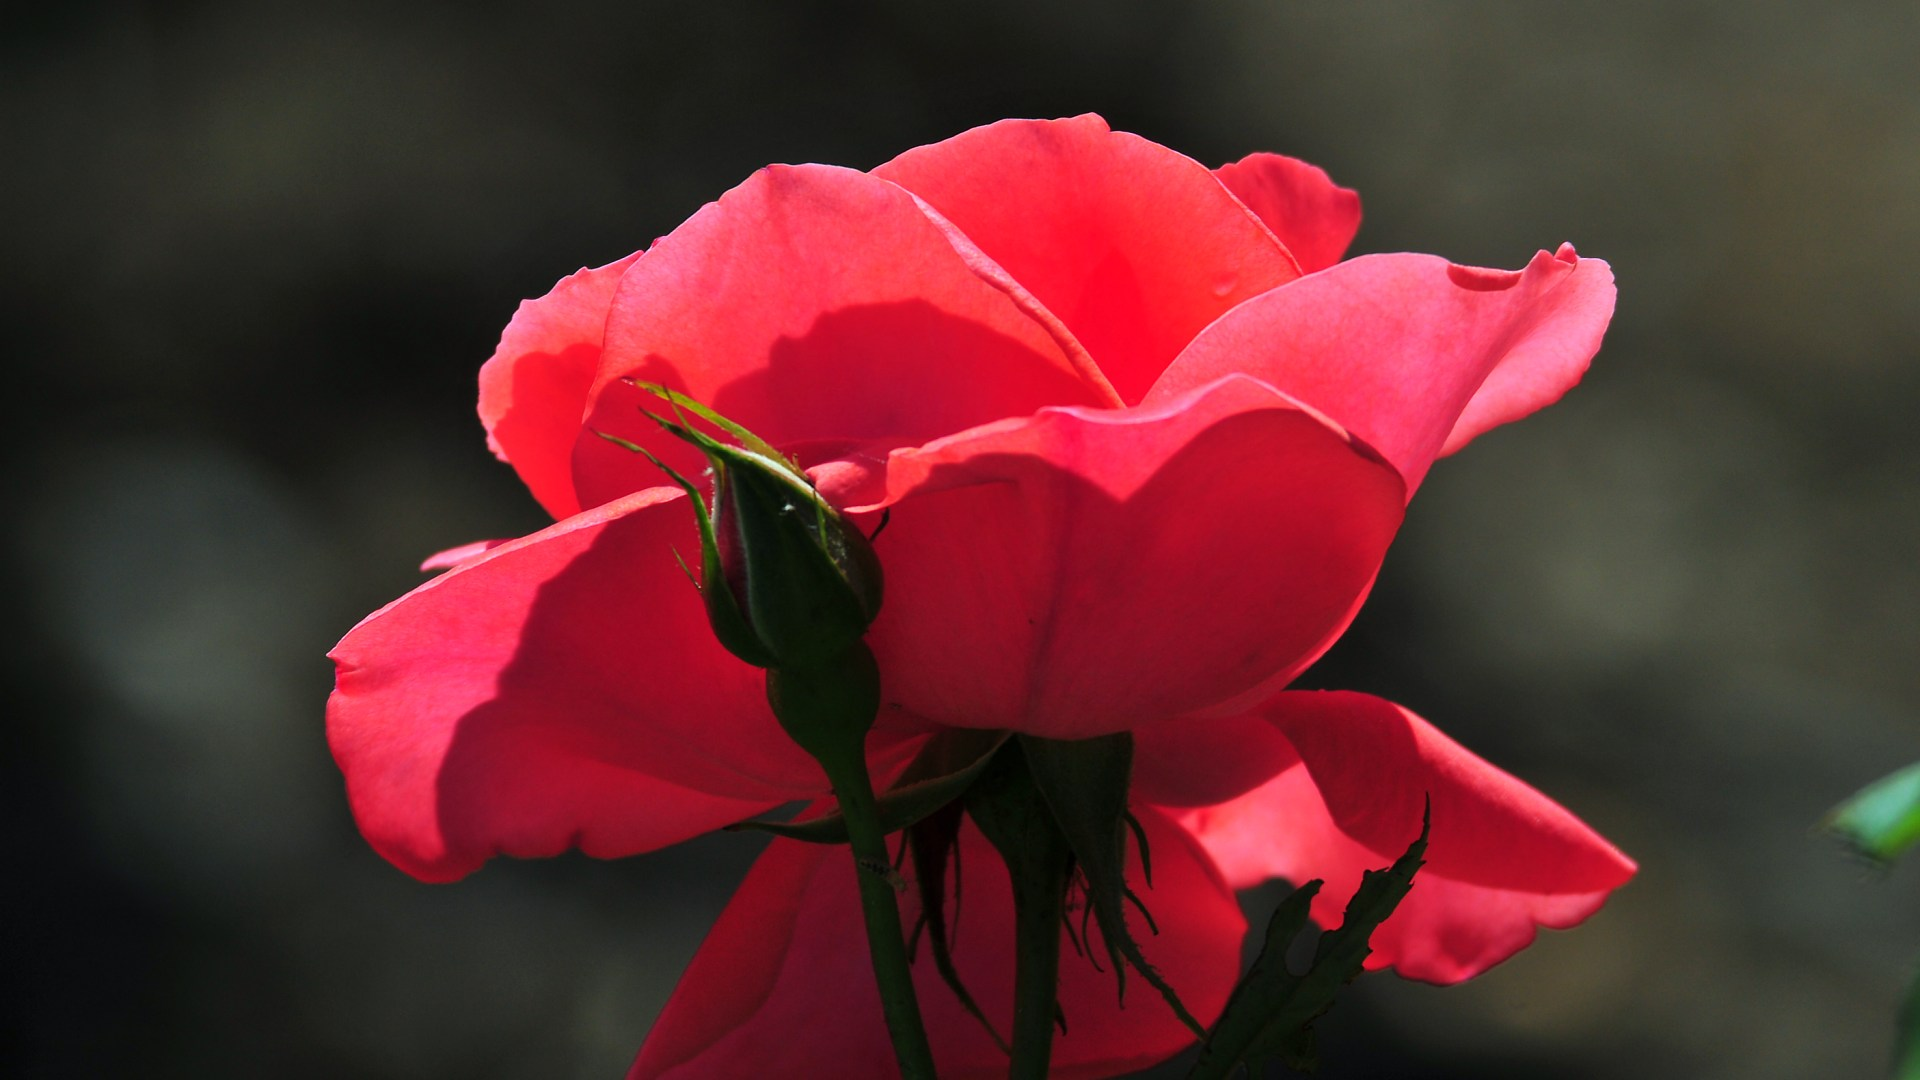 cool-pink-roses-flowers-hd-wallpaper-background-08